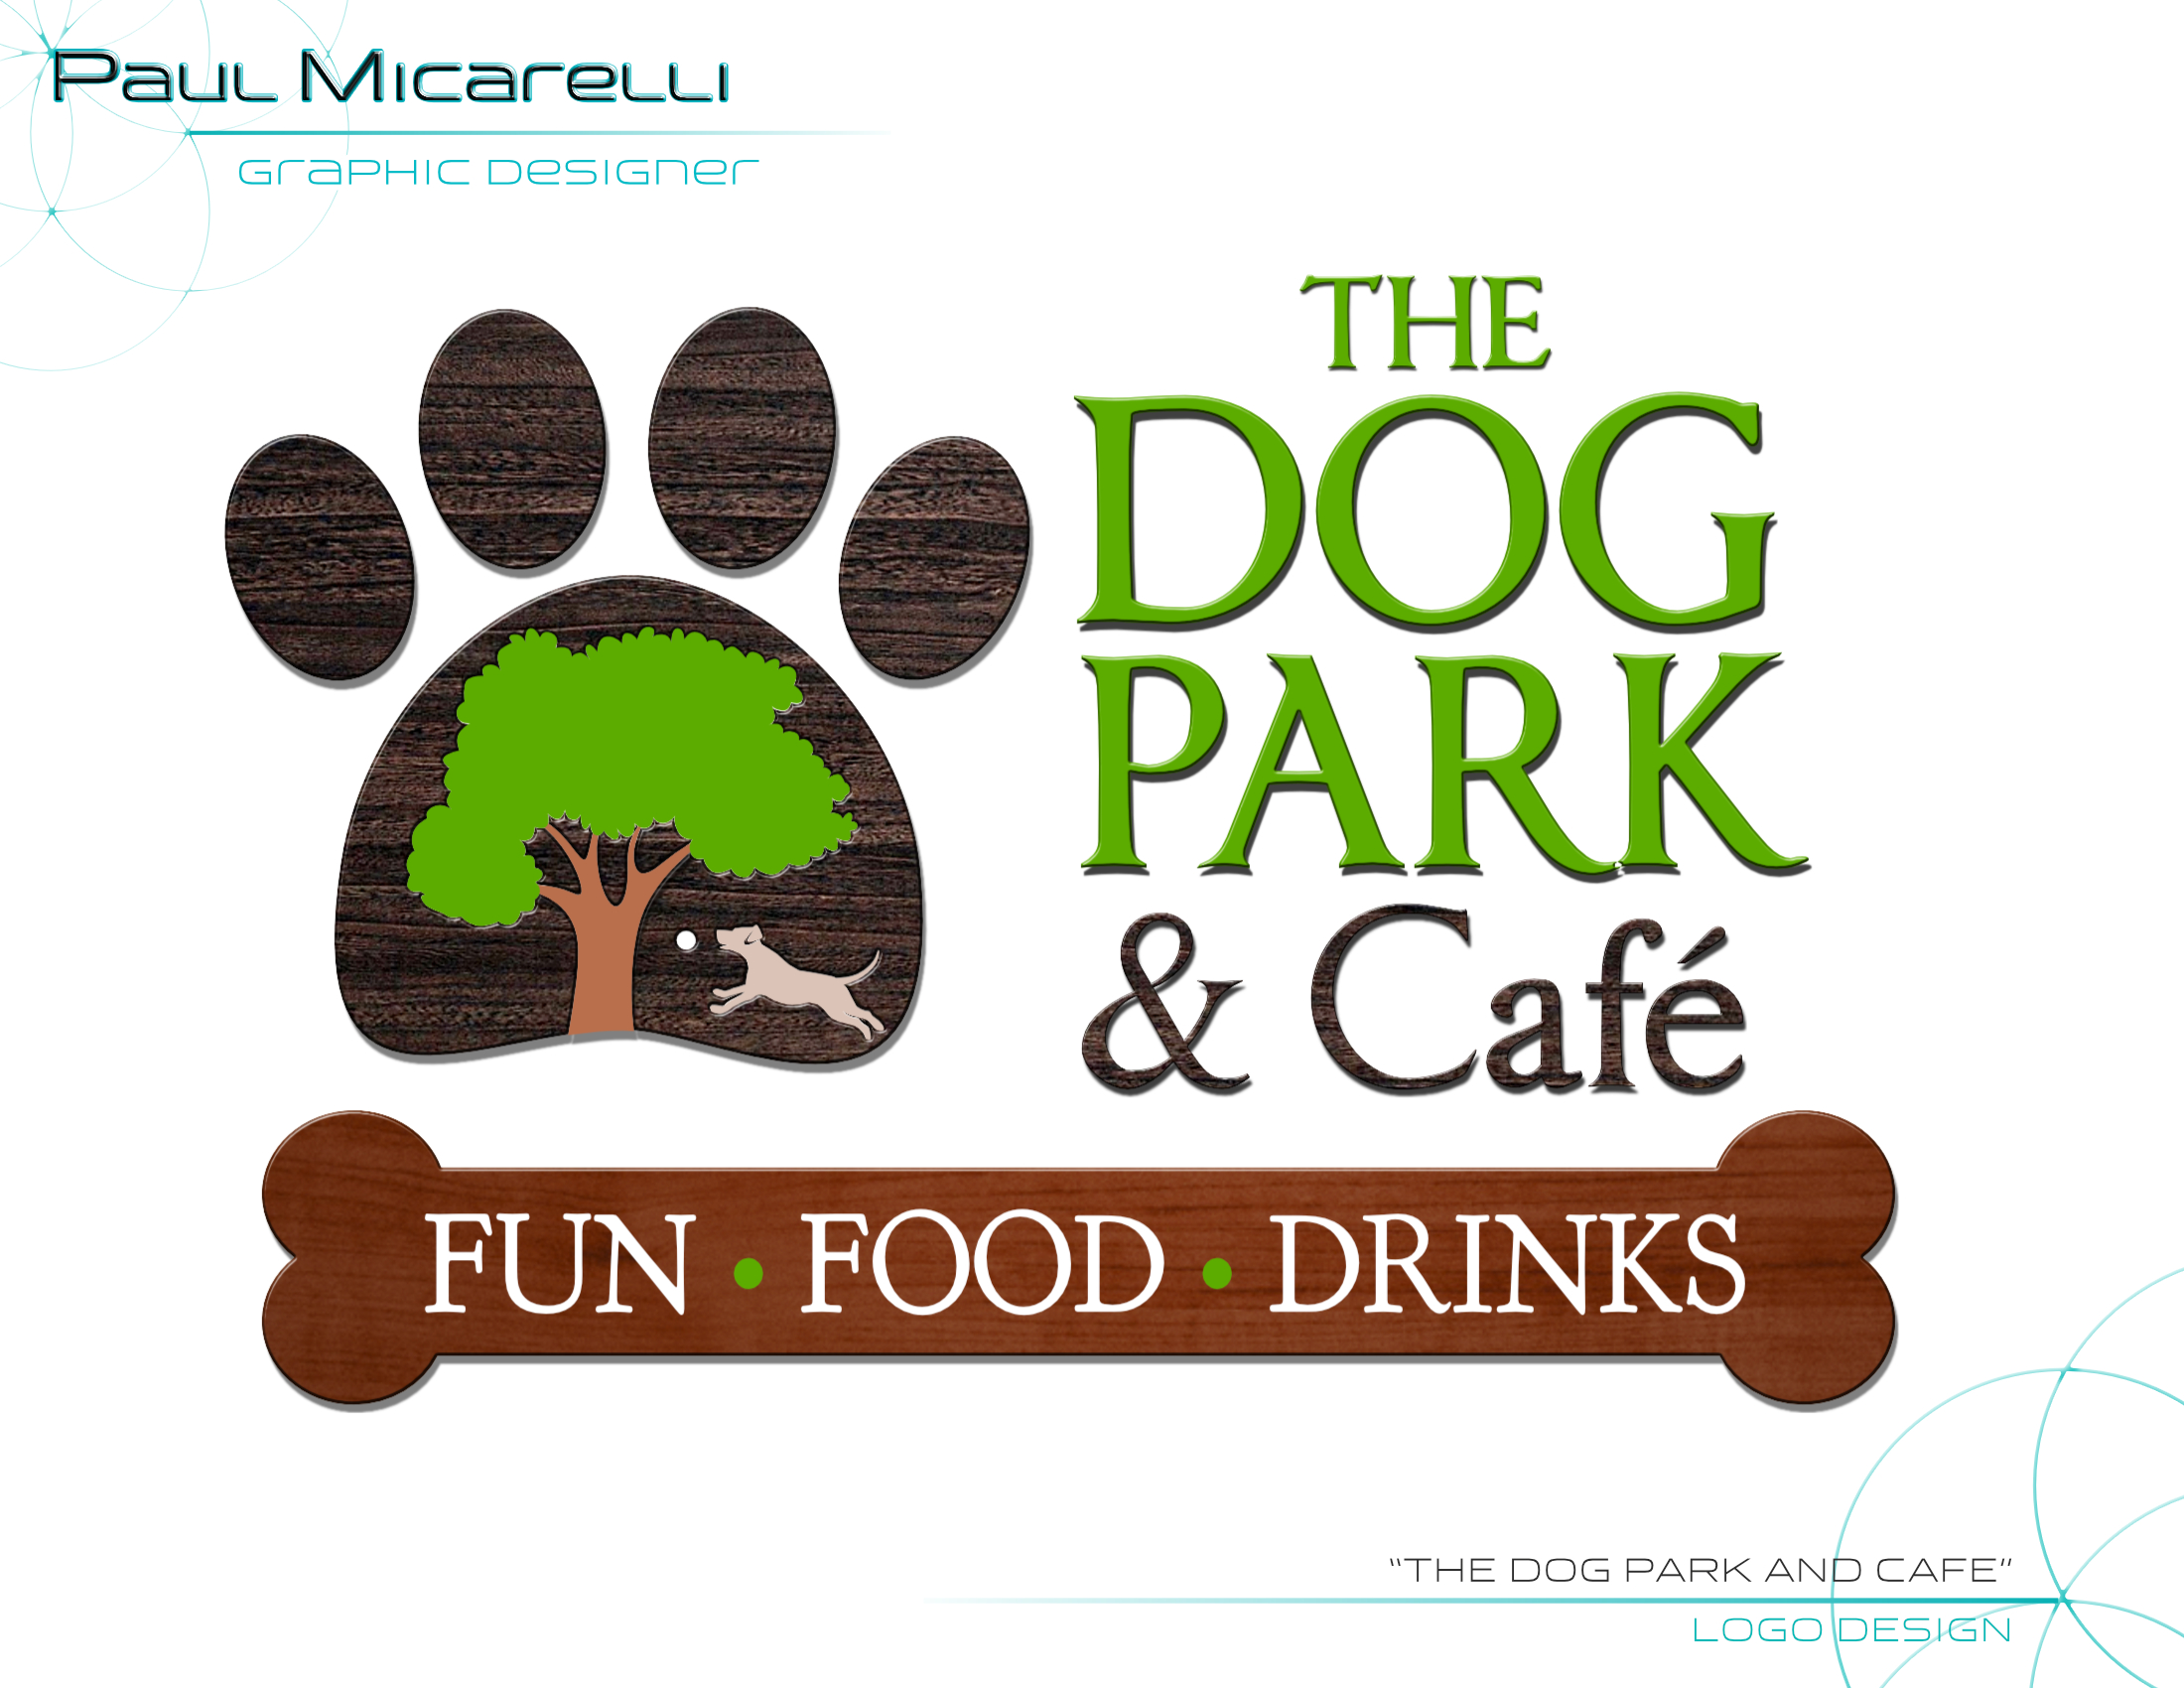 Paul-Micarelli-The Dog Park Cafe-Logo